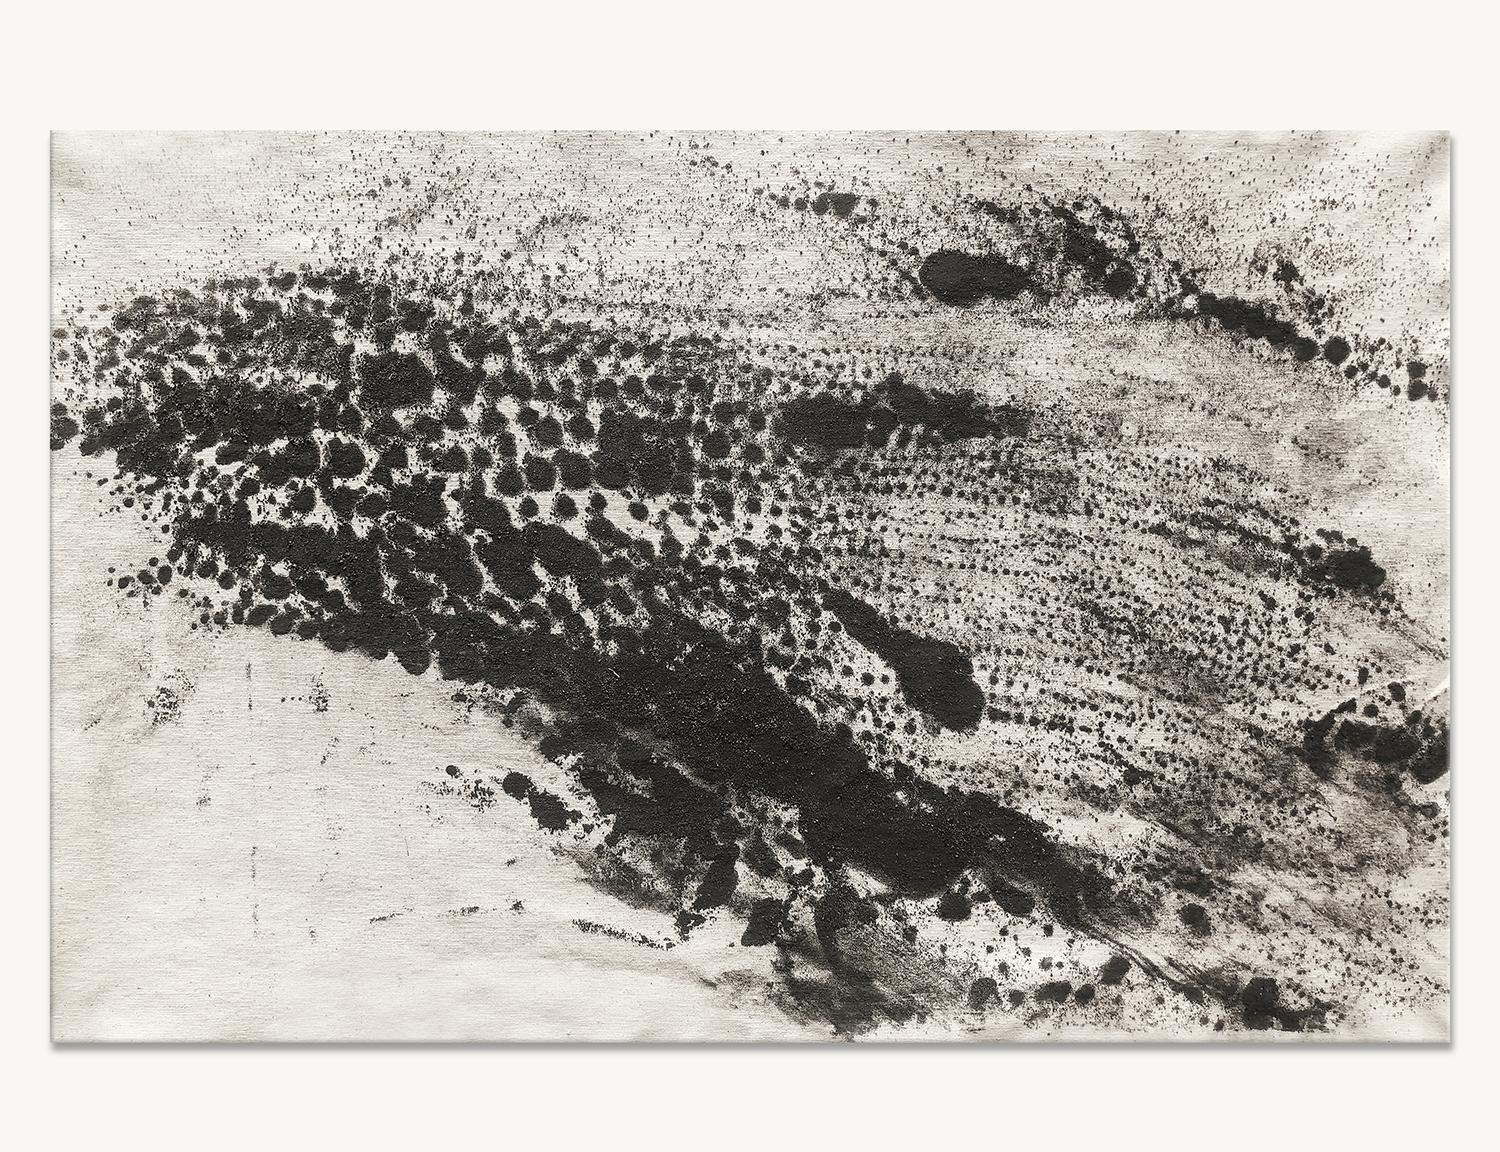 Ash Ceniza #7, (drawing, black and white, abstract, expressionist, ashes, paper)